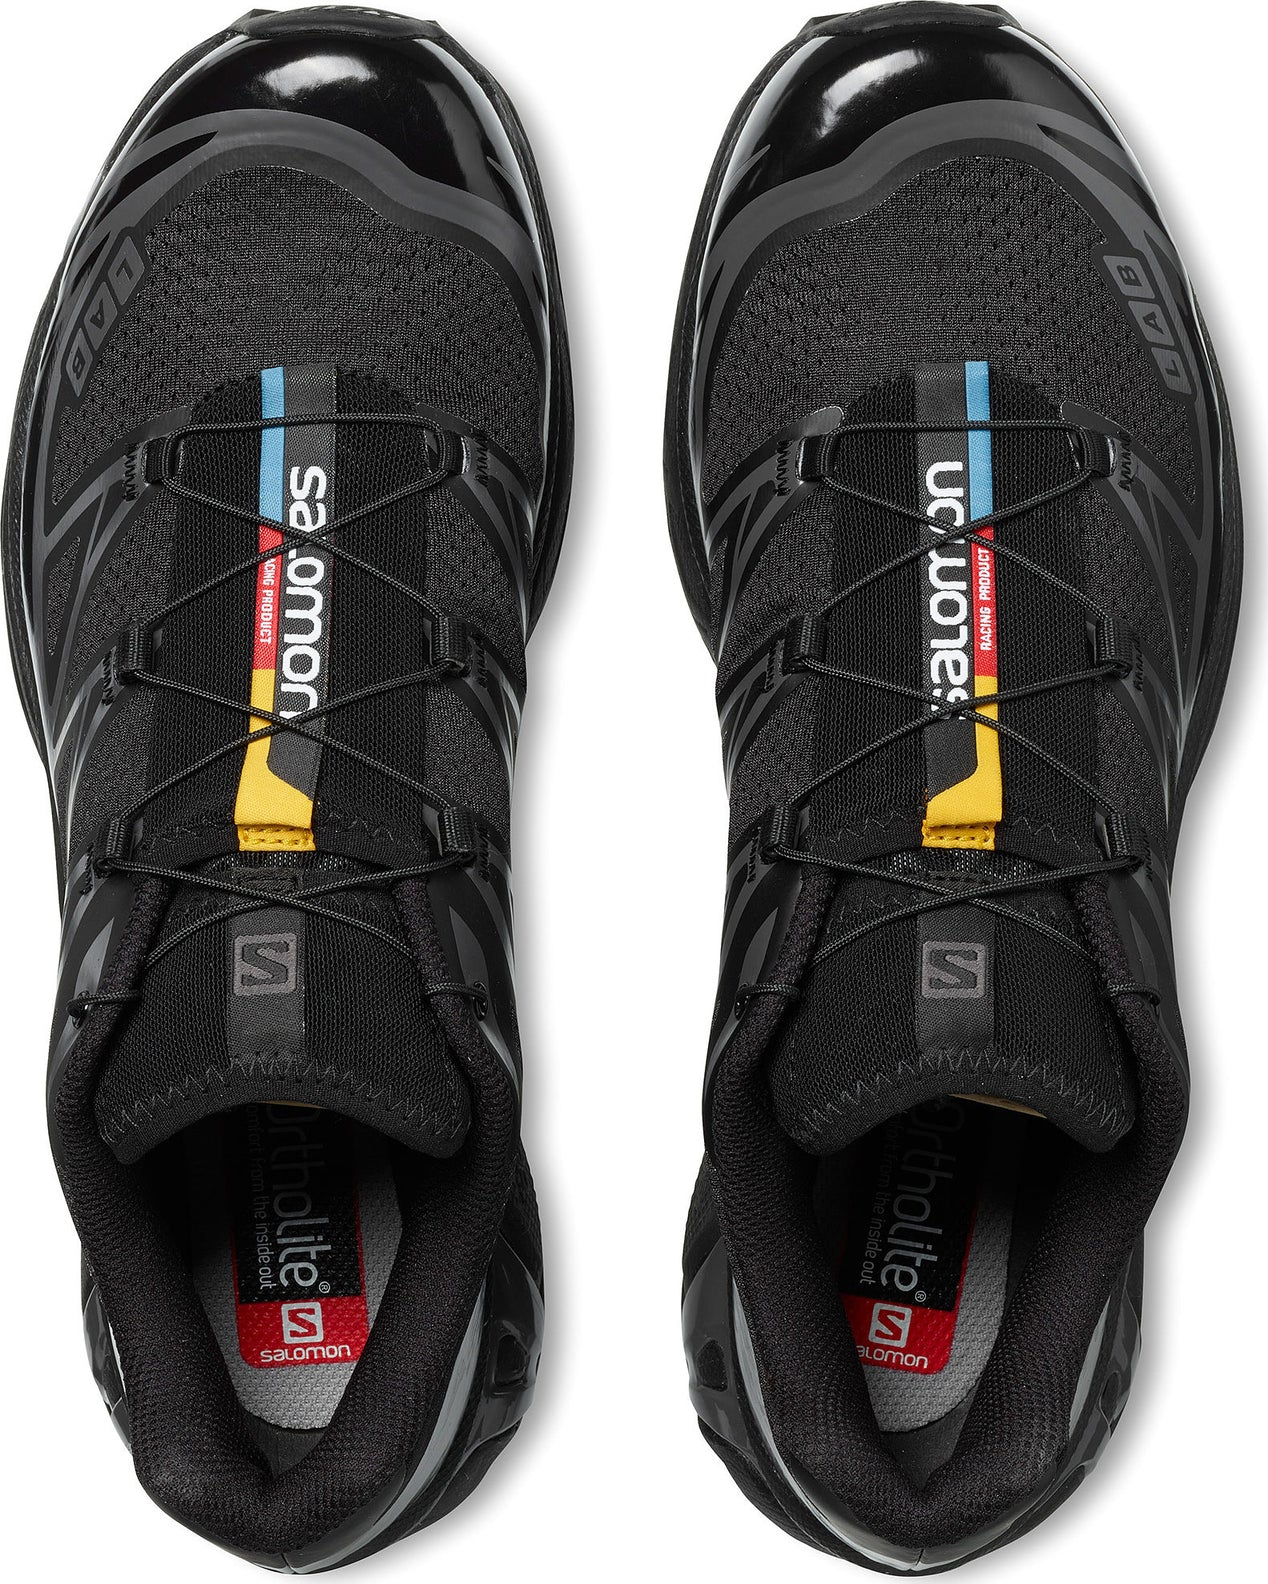 9db77e95f Salomon S/lab Xt-6 Softground Lt Adv Shoes - Unisex | Altitude Sports